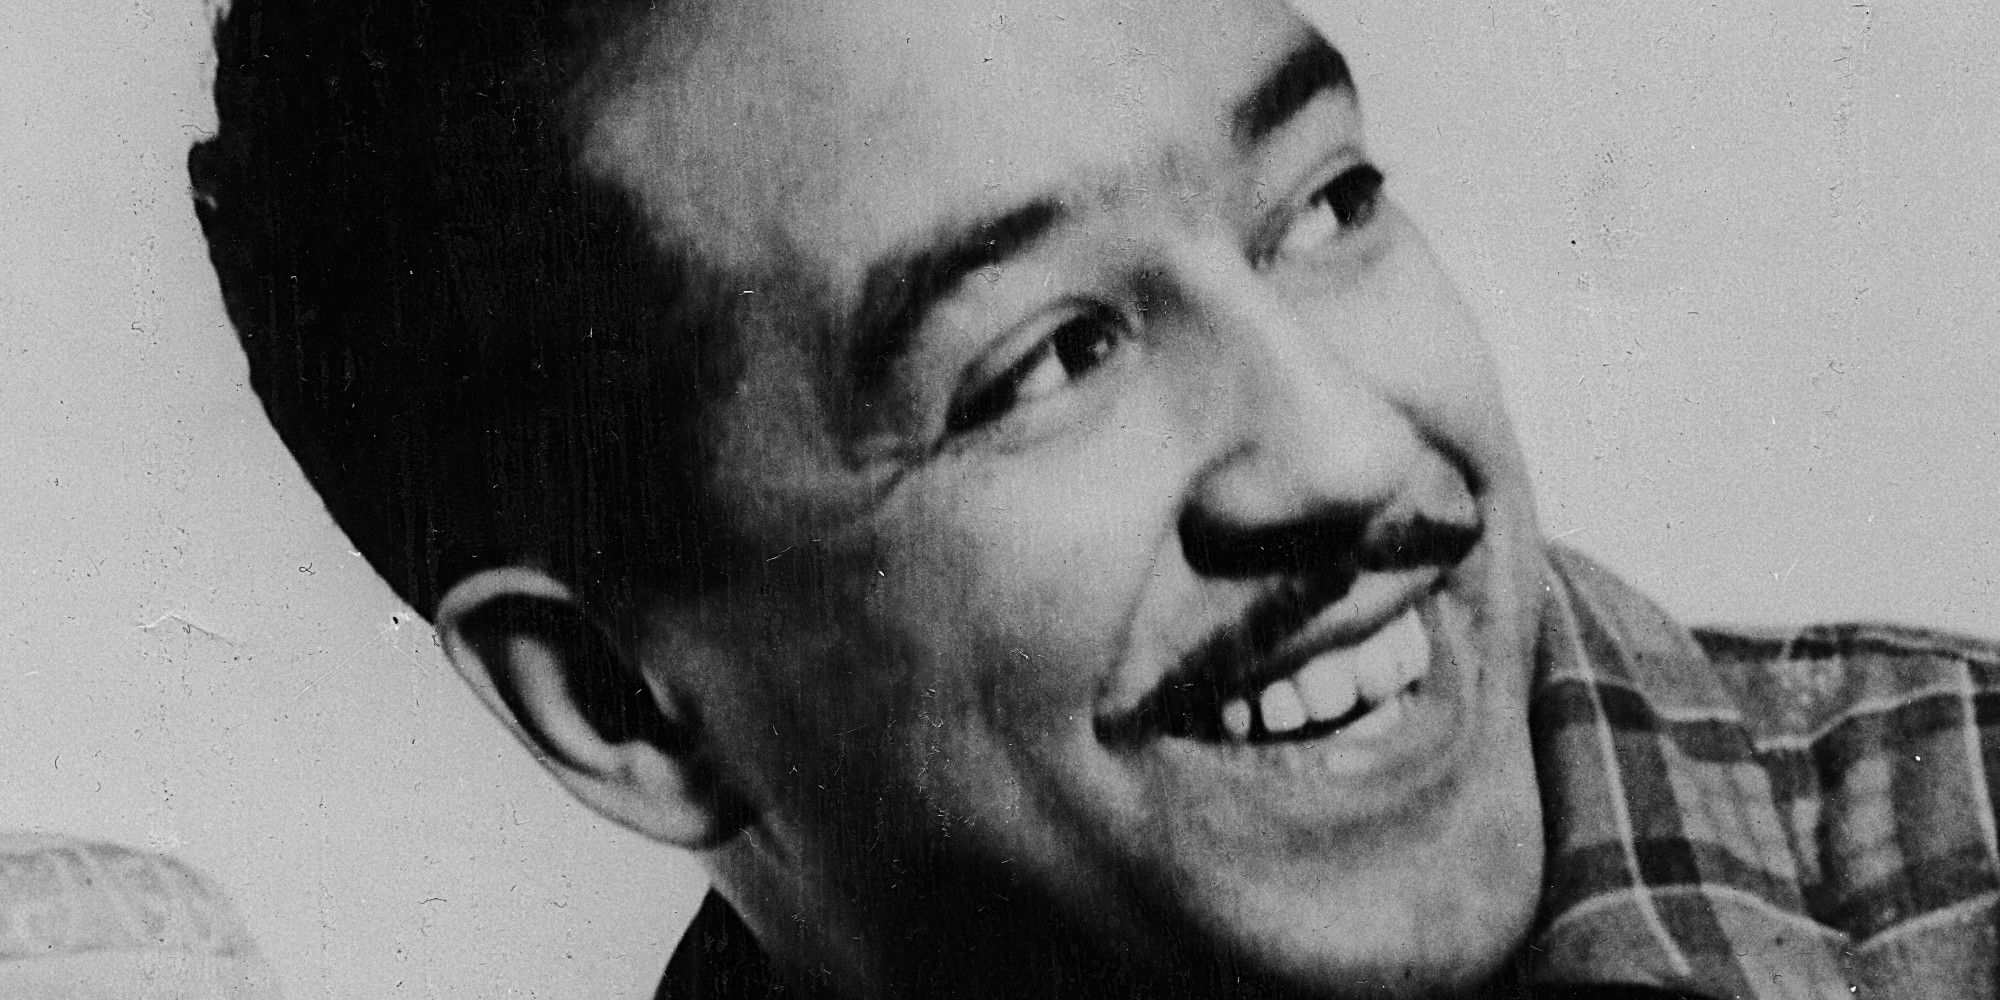 james langston hughes and the harlem renaissance Langston hughes (1902 - may 22, 1967) was an american poet, novelist, playwright and short story writer hughes was one of the writers and artists whose work was called the harlem renaissance.